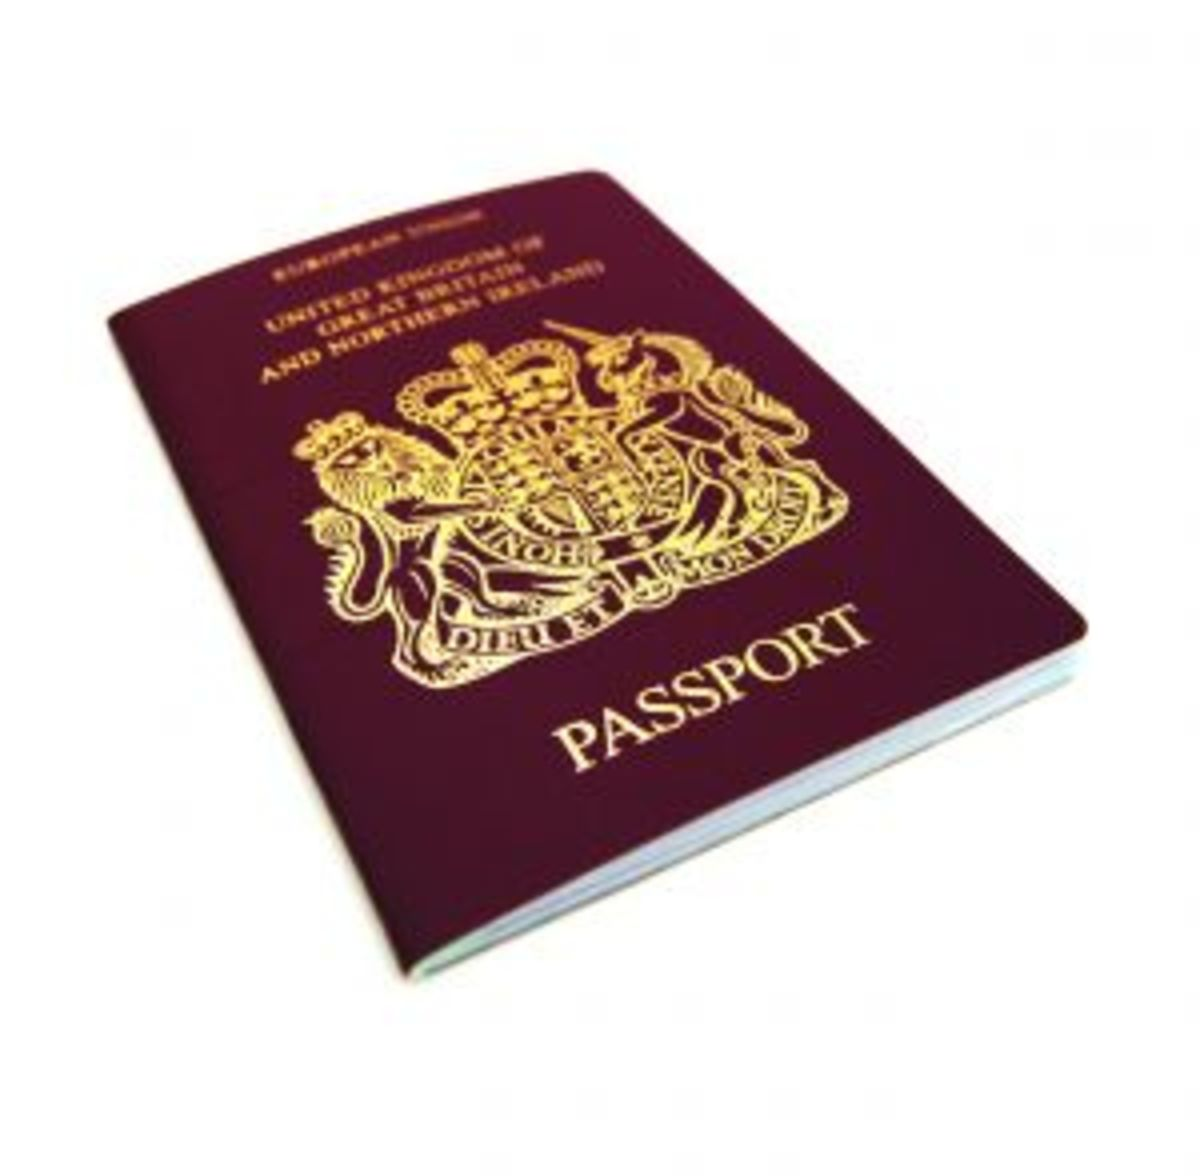 Invitation letter sample for friends or family to visit the UK, for UK Visa applications